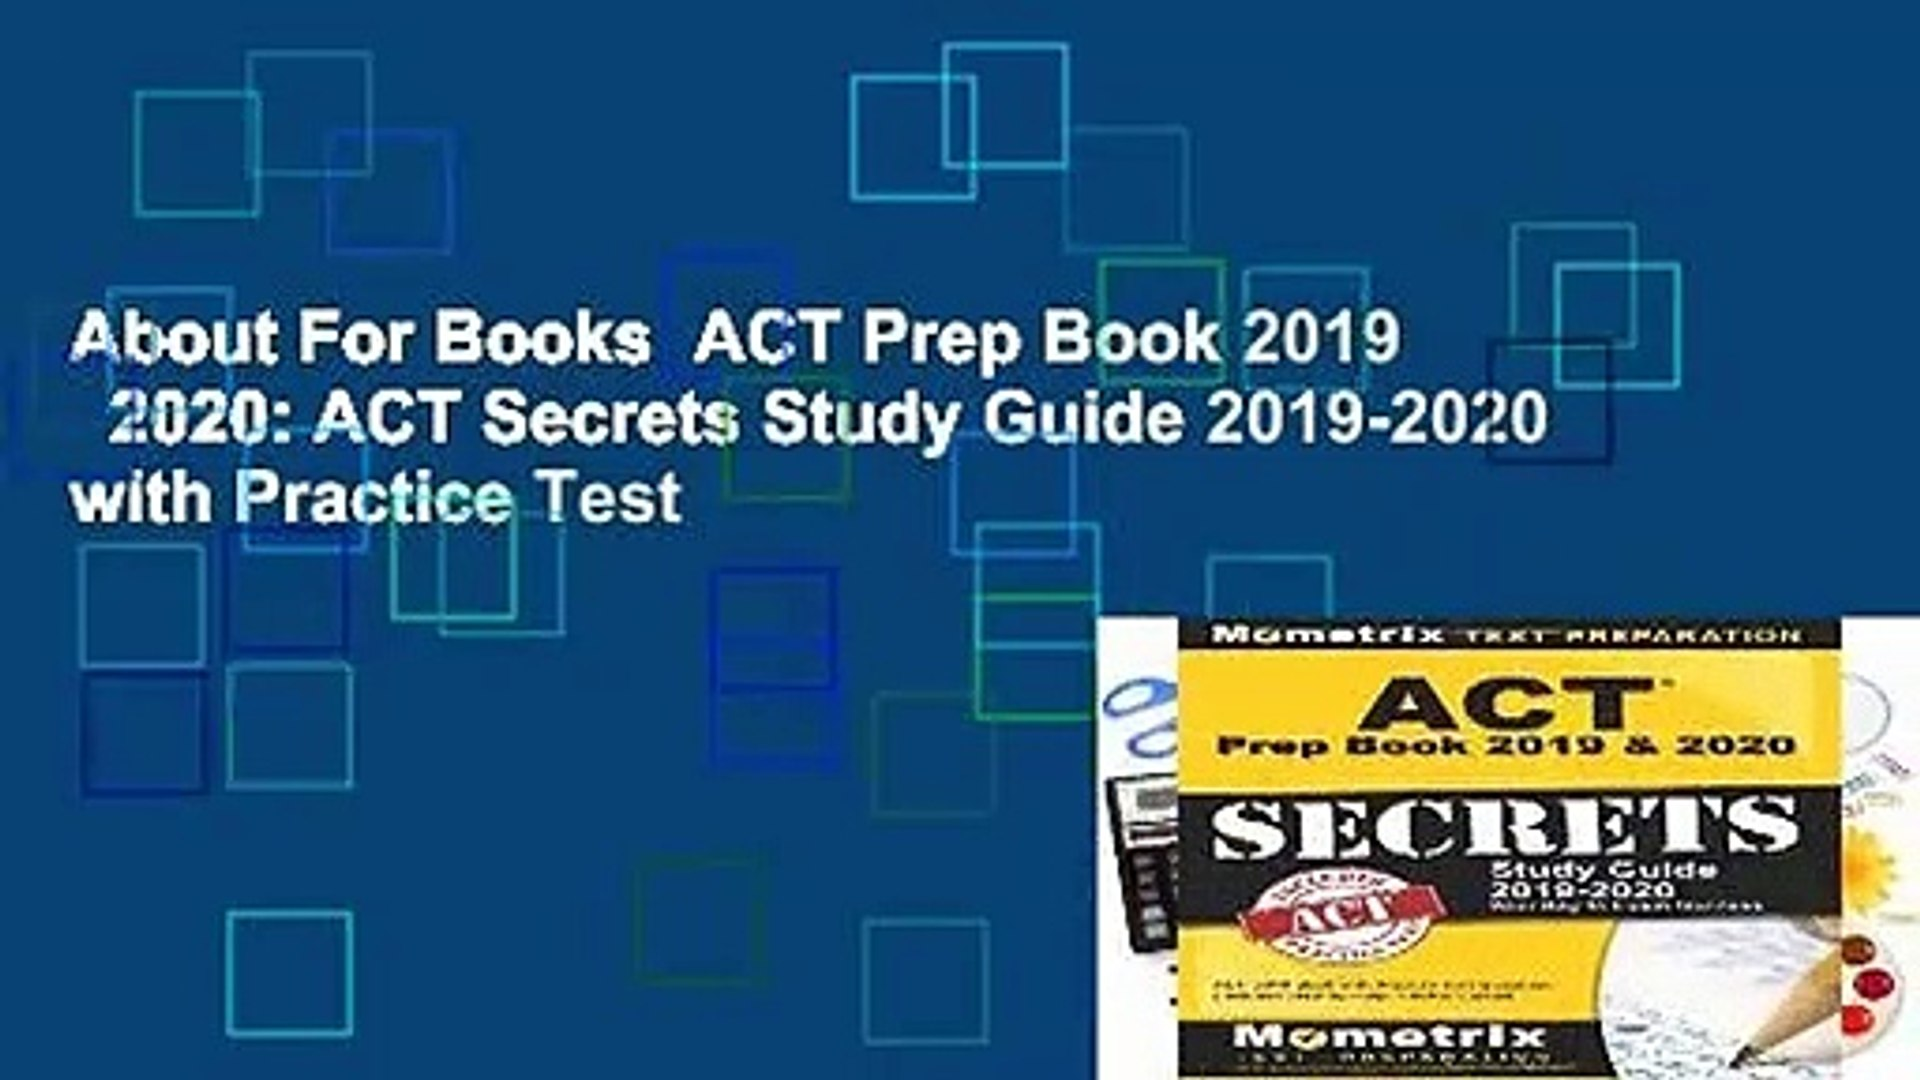 About For Books  ACT Prep Book 2019   2020: ACT Secrets Study Guide 2019-2020 with Practice Test